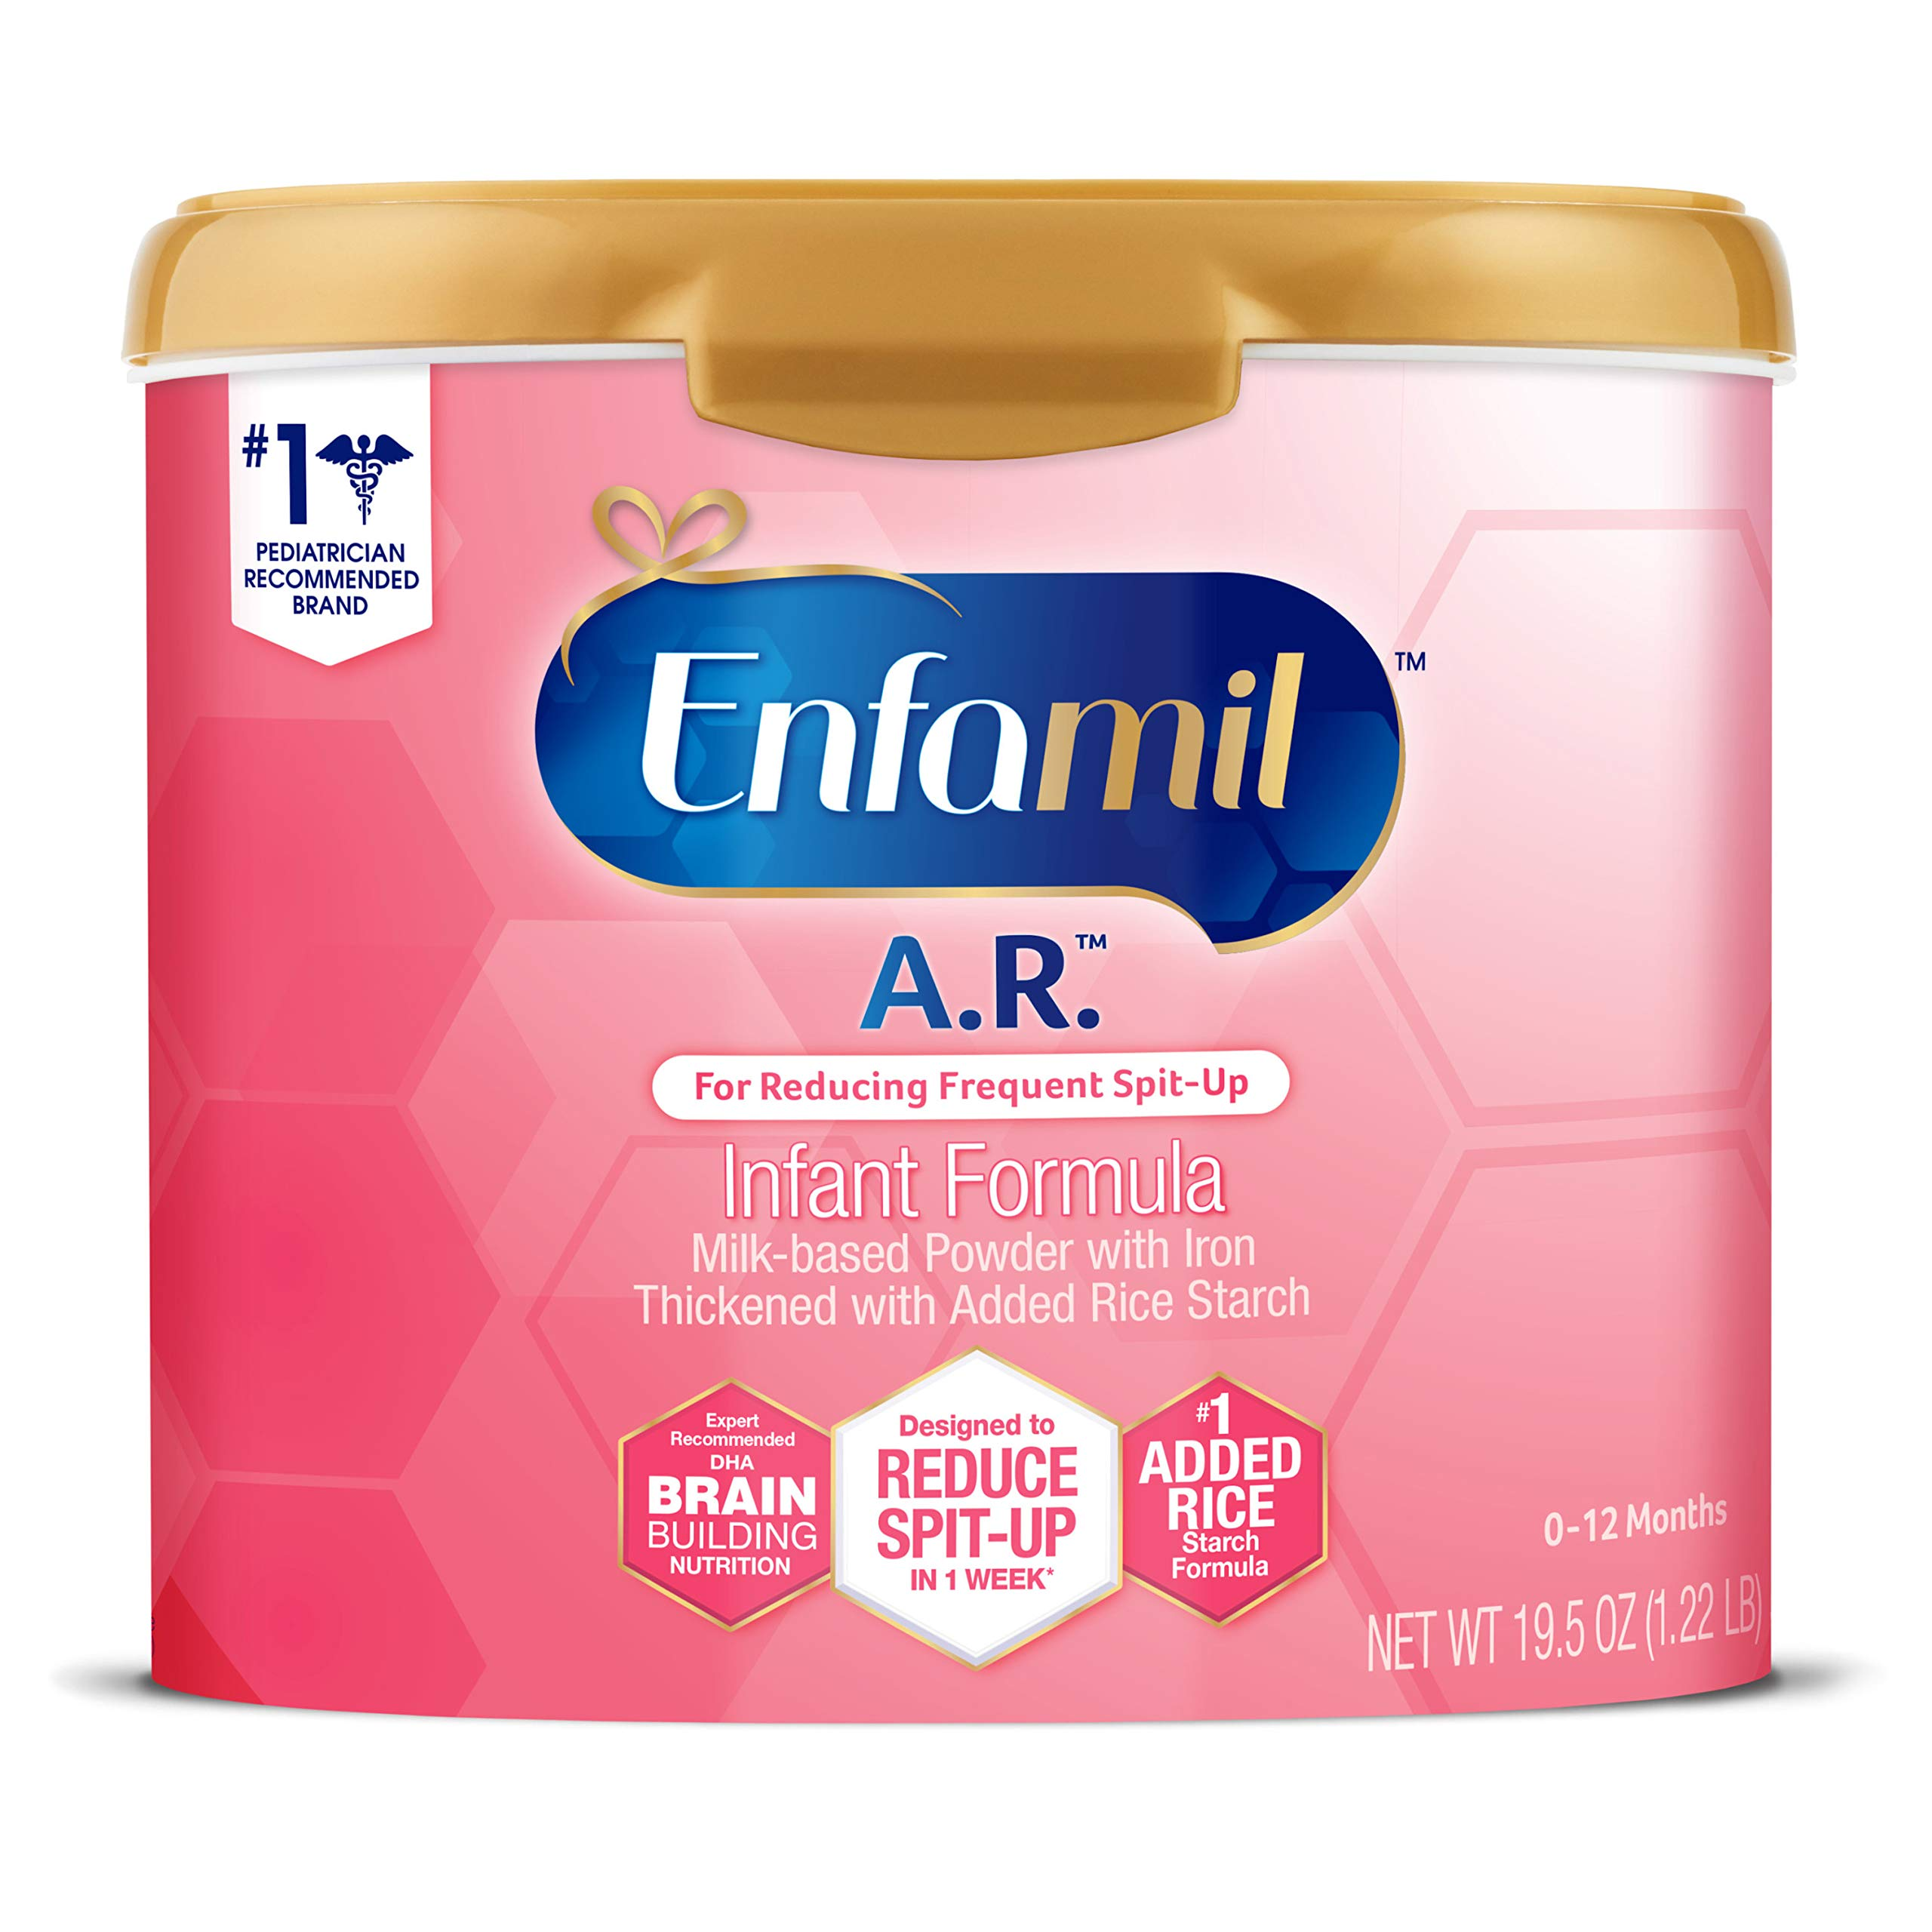 Enfamil A.R. Infant Formula - Clinically Proven to Reduce Spit-Up in 1 Week - Reusable Powder Tub, 19.5 oz